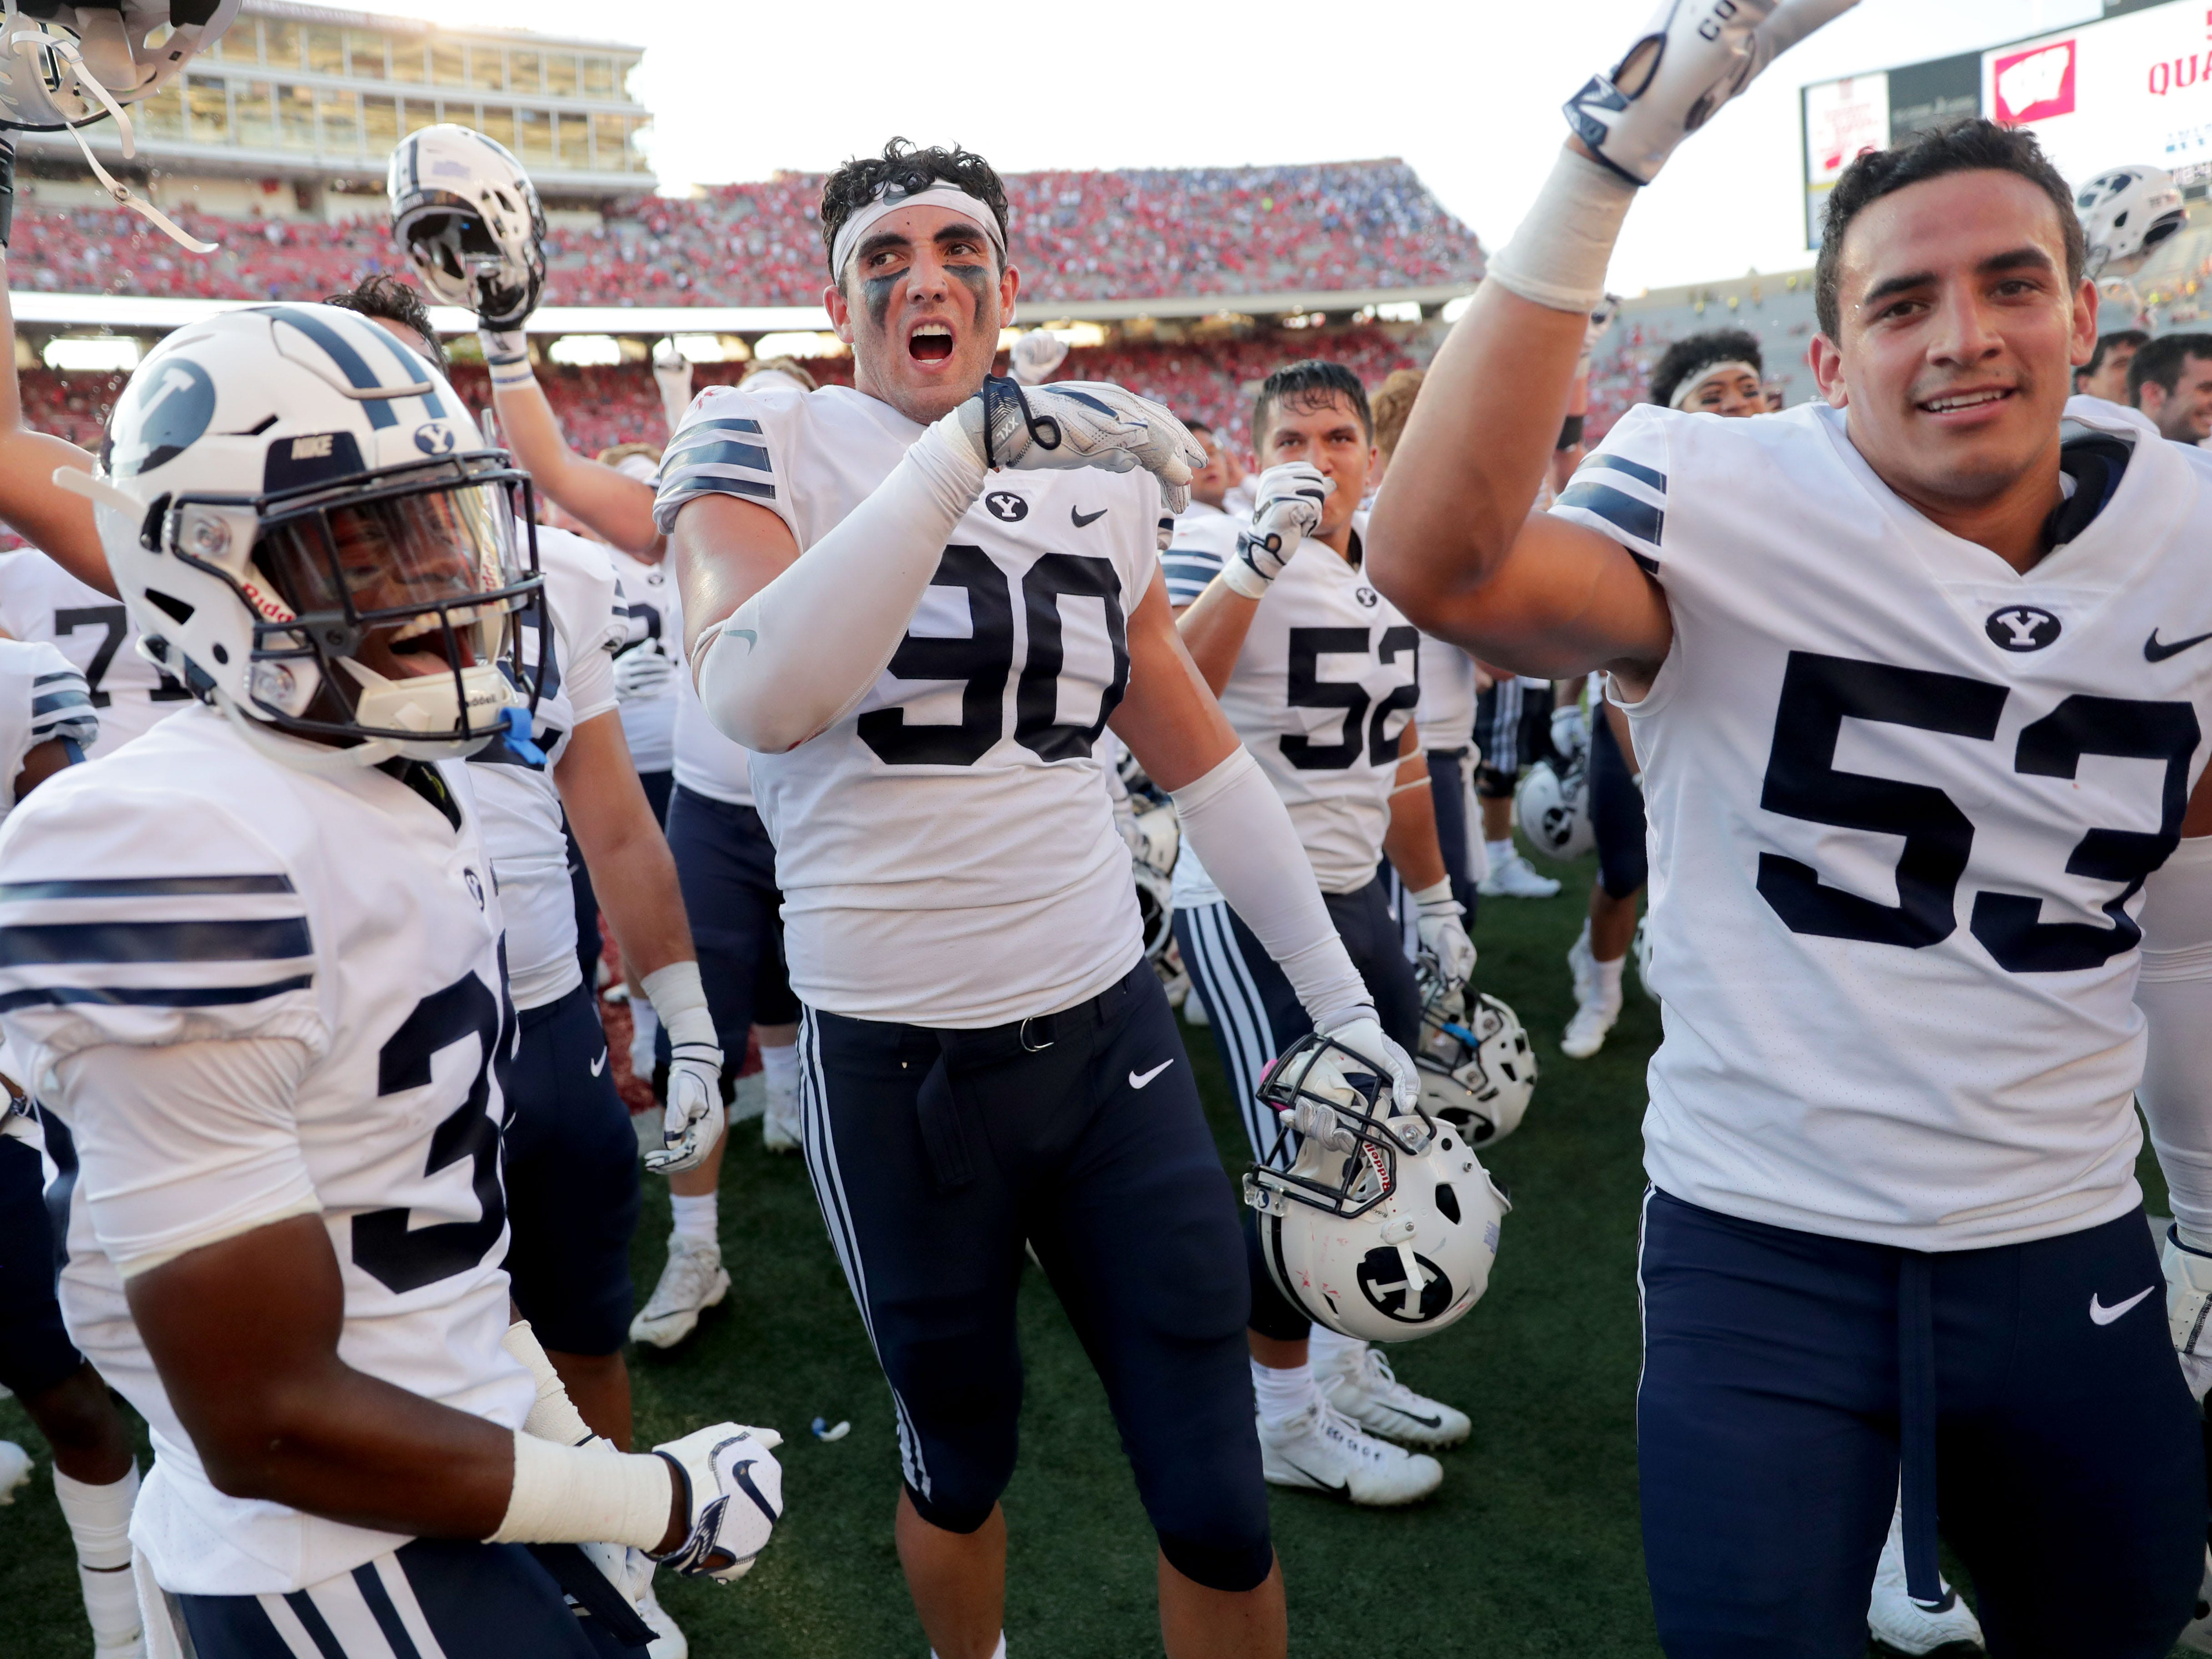 BYU players celebrate after beating Wisconsin, 24-21, Saturday at Camp Randall Stadium.